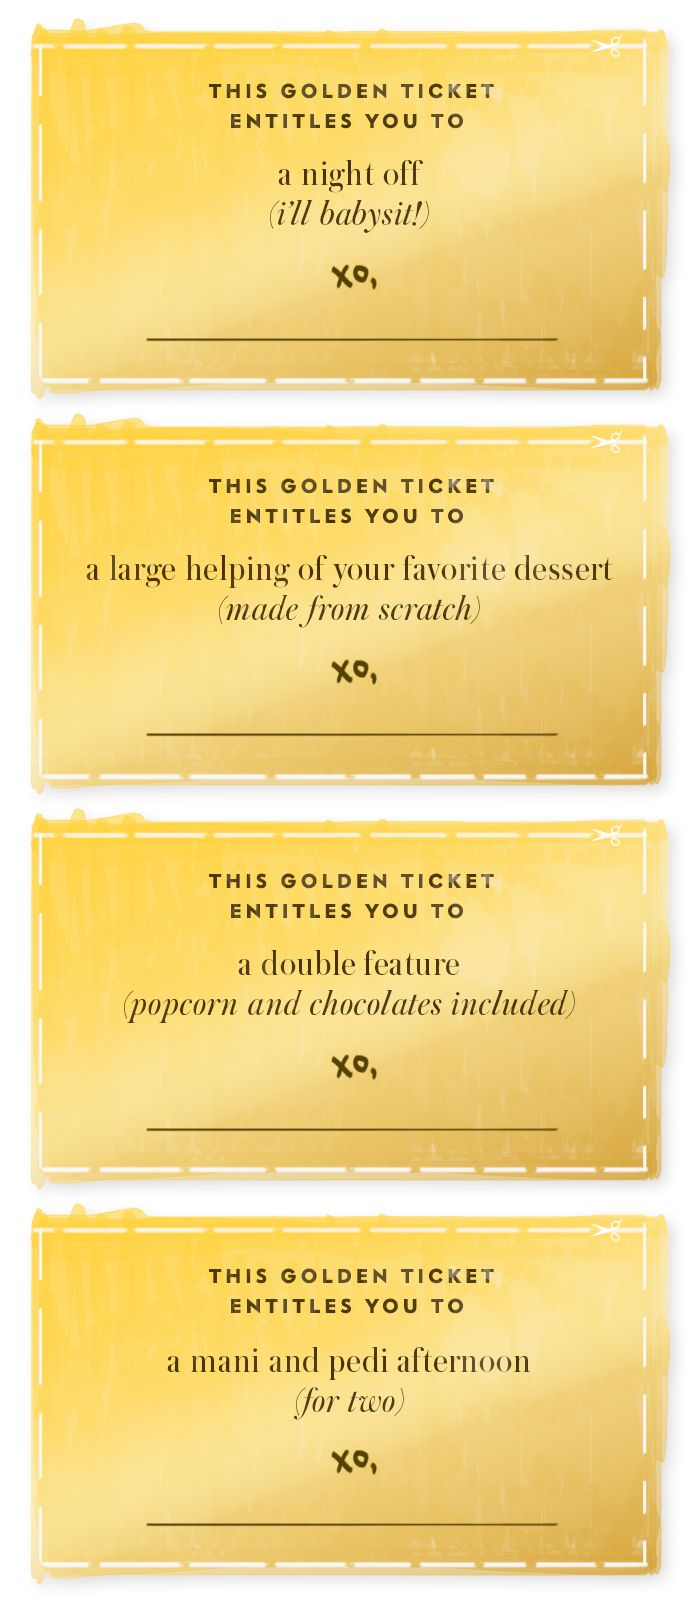 30 best THE GOLDEN TICKET images on Pinterest | Golden ticket ...